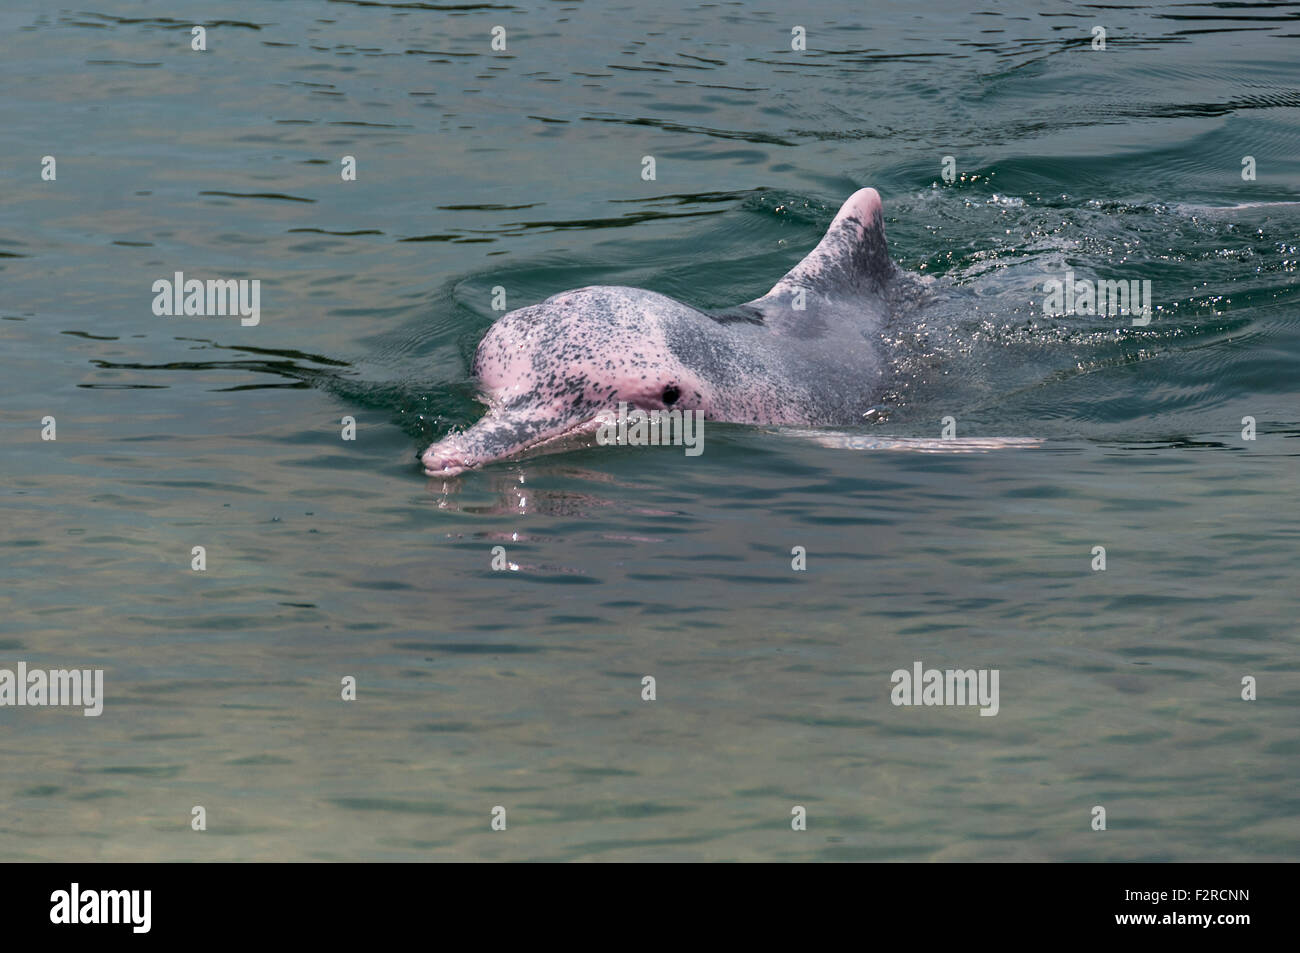 very rare pink dolphin in Singapore protection area - Stock Image